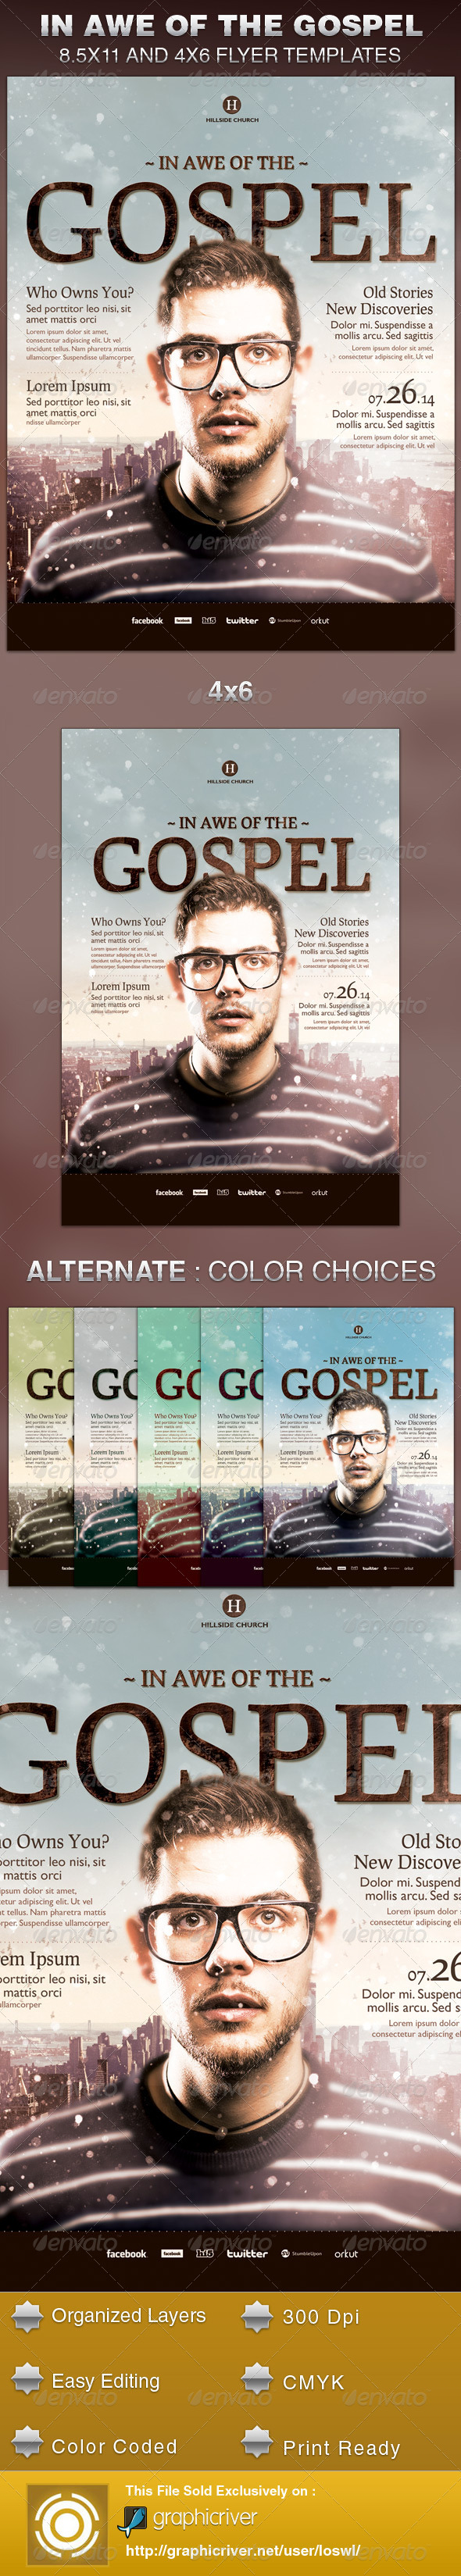 GraphicRiver In Awe of the Gospel Church Flyer Template 6200983